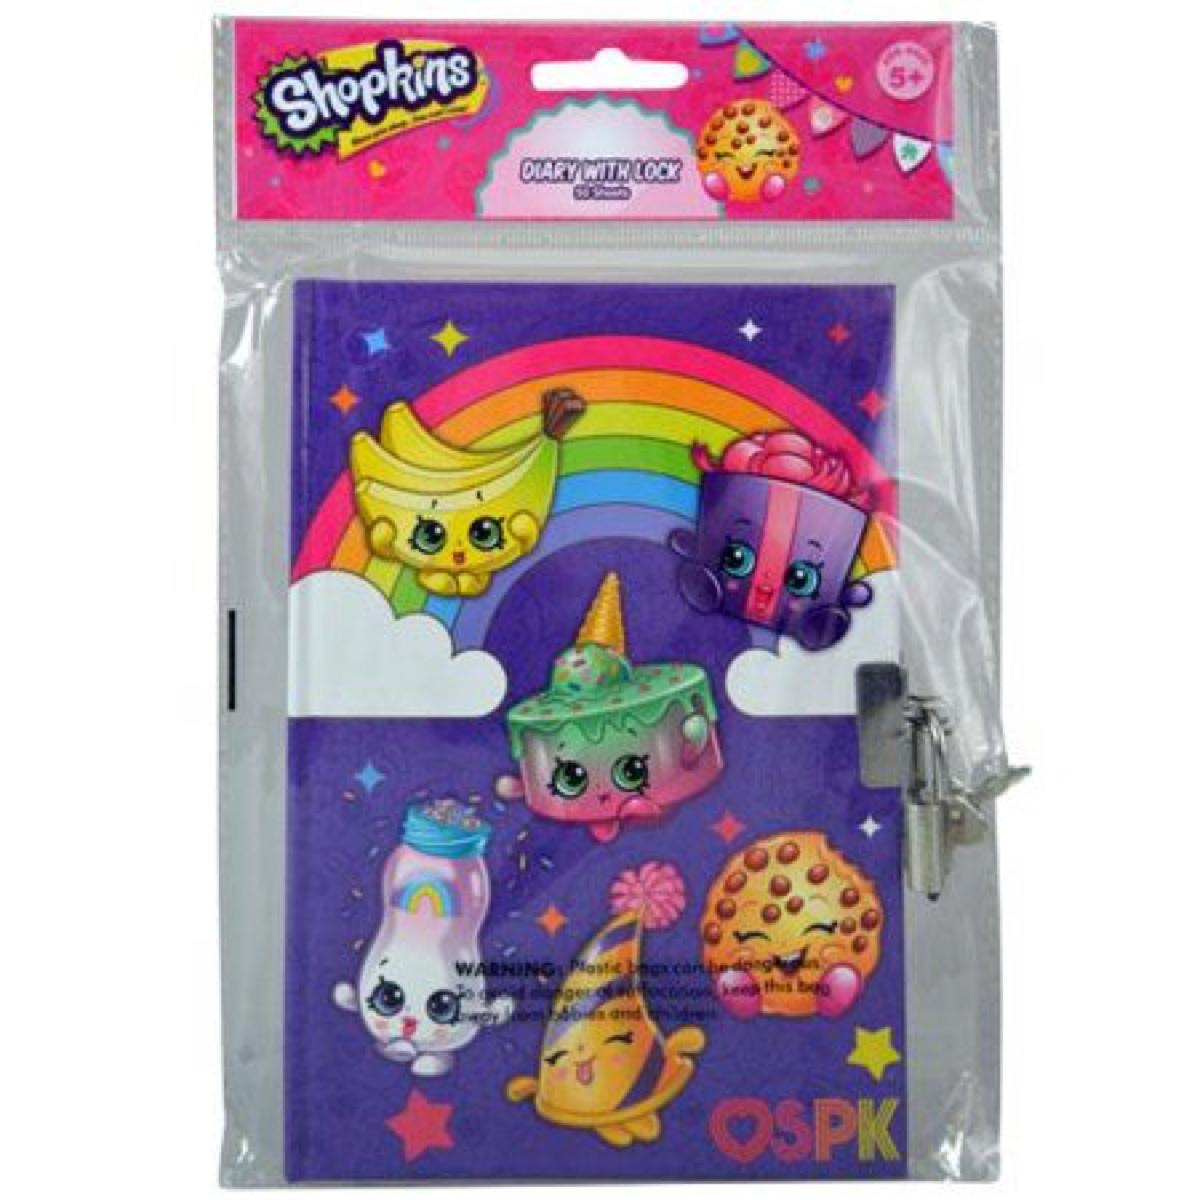 Shopkins Diary 50 Sheets with Lock